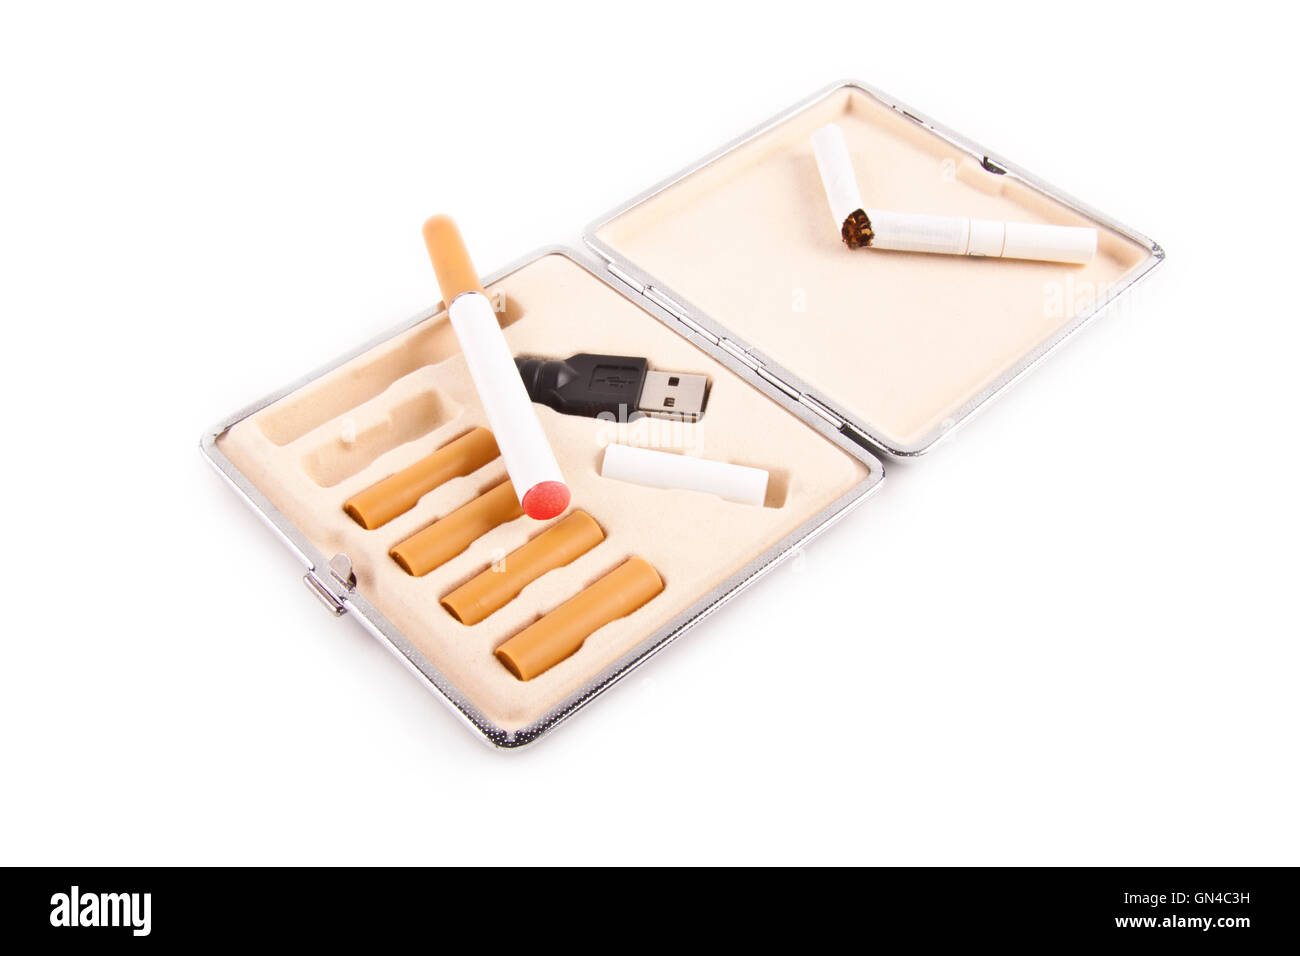 electric cigarette isolated - Stock Image